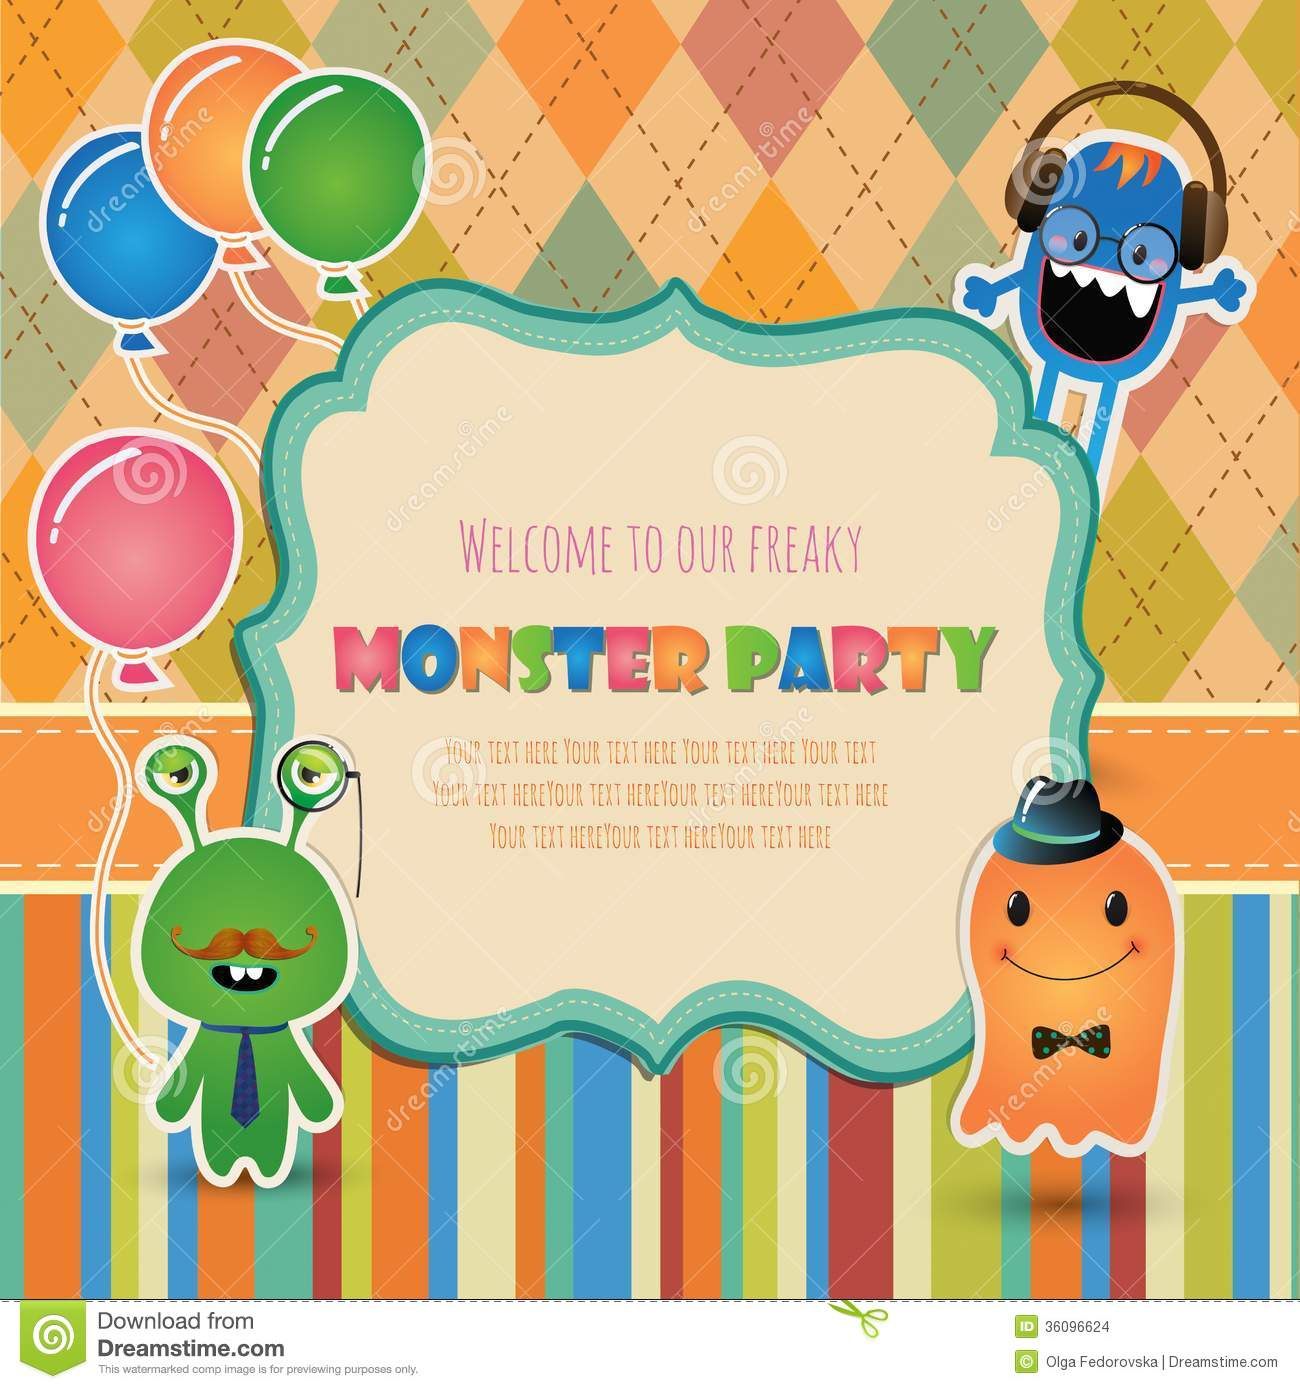 Monster Party Invitation Card Design Stock Vector